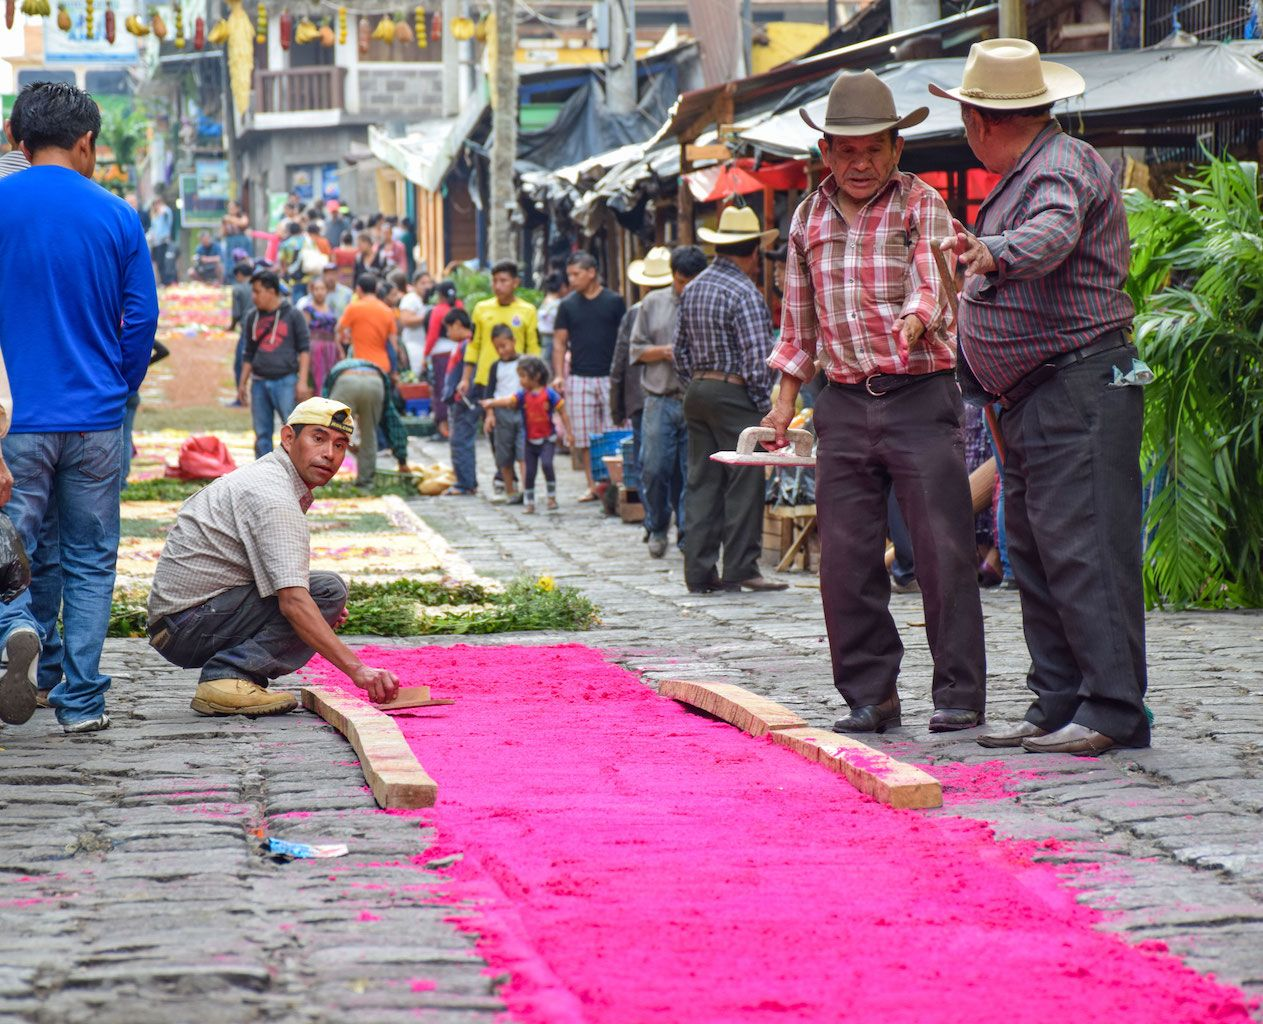 Men making an alfombra in Guatemala for Easter